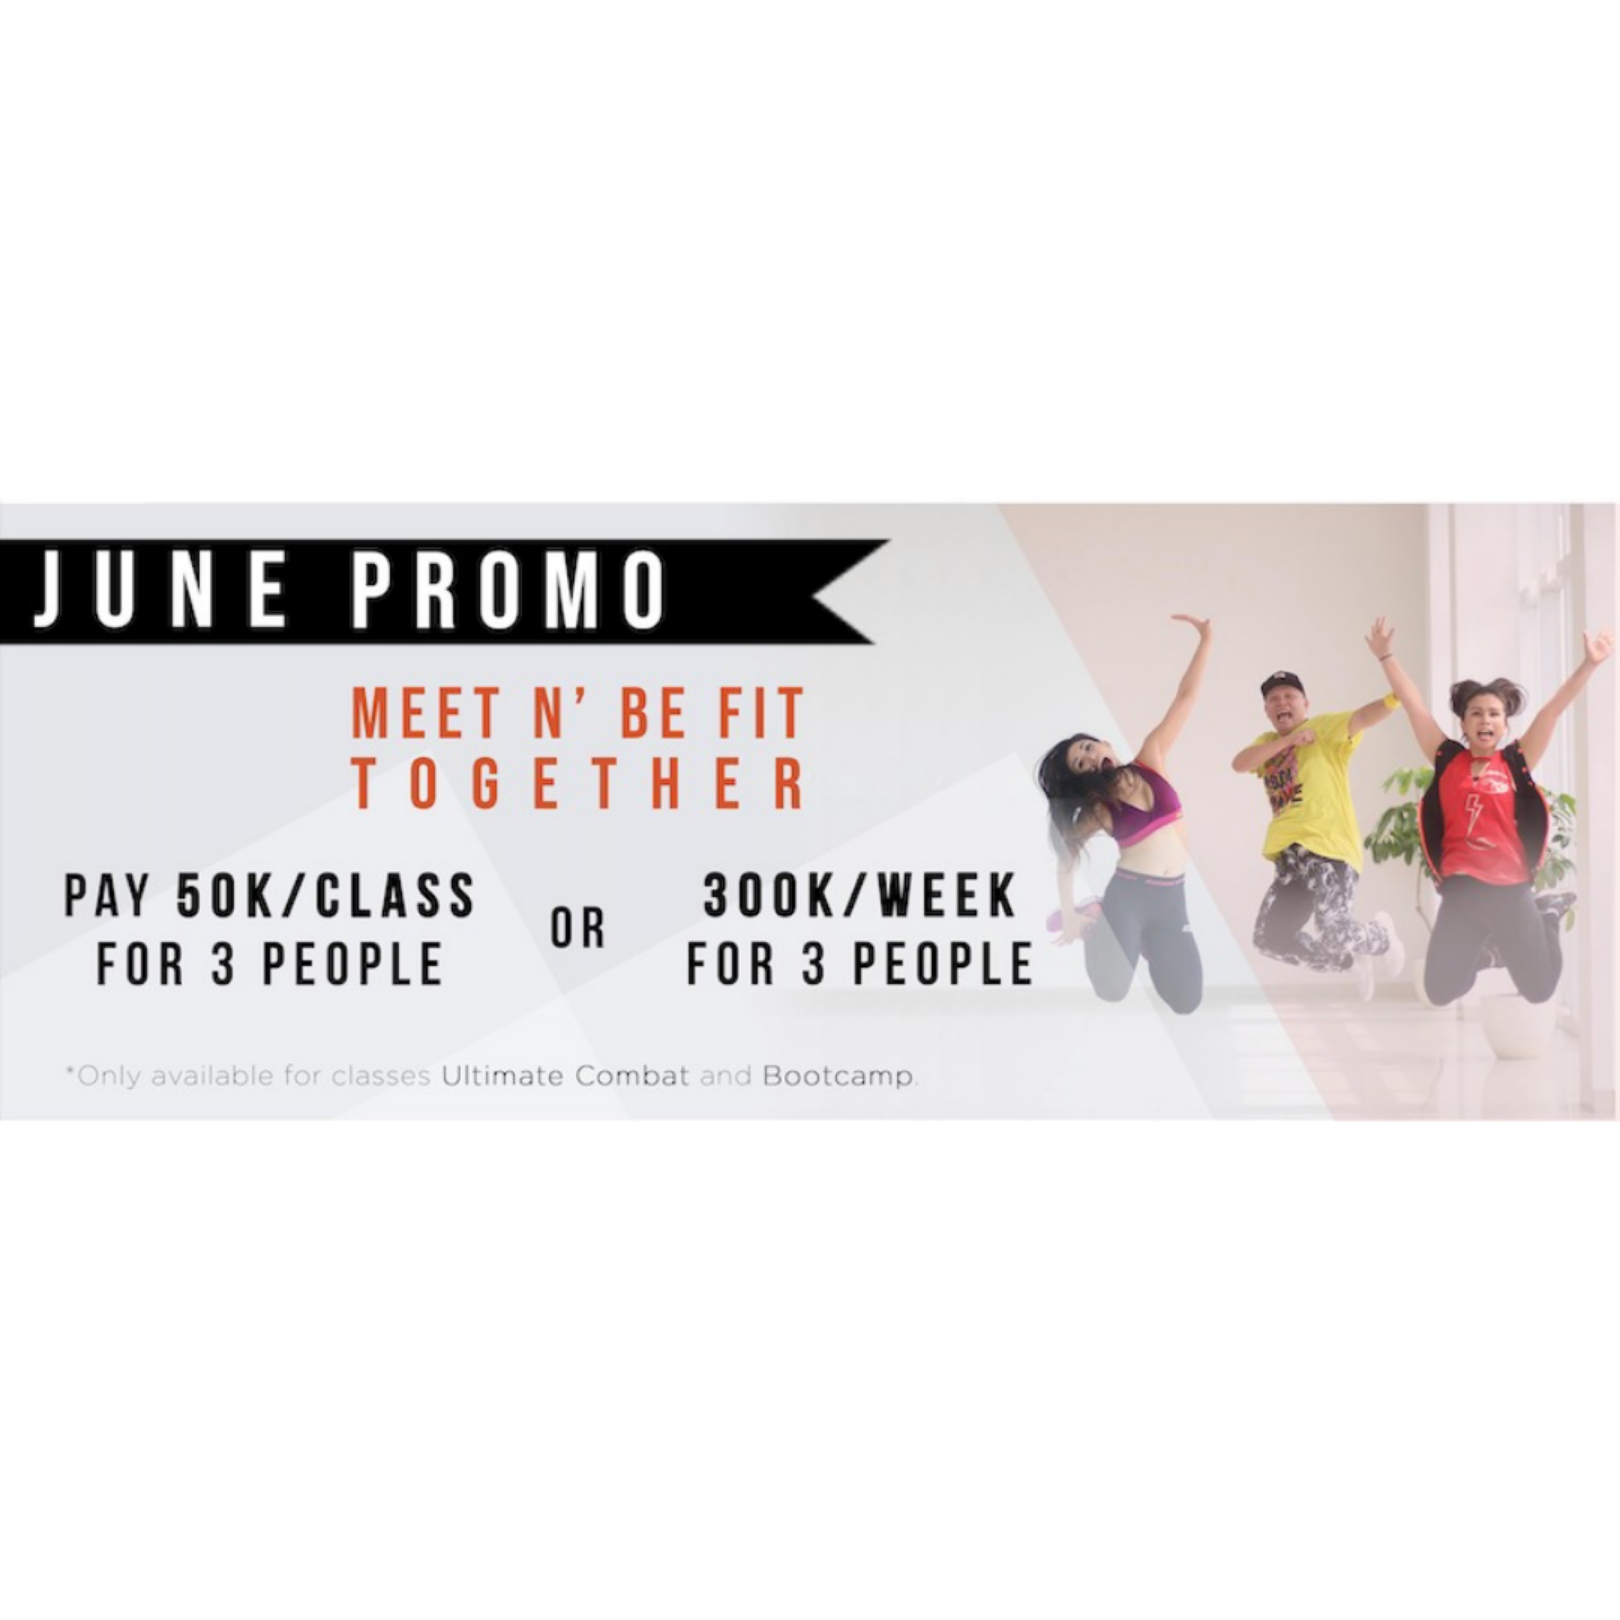 June Promo Pay 300K/Week For 3 People